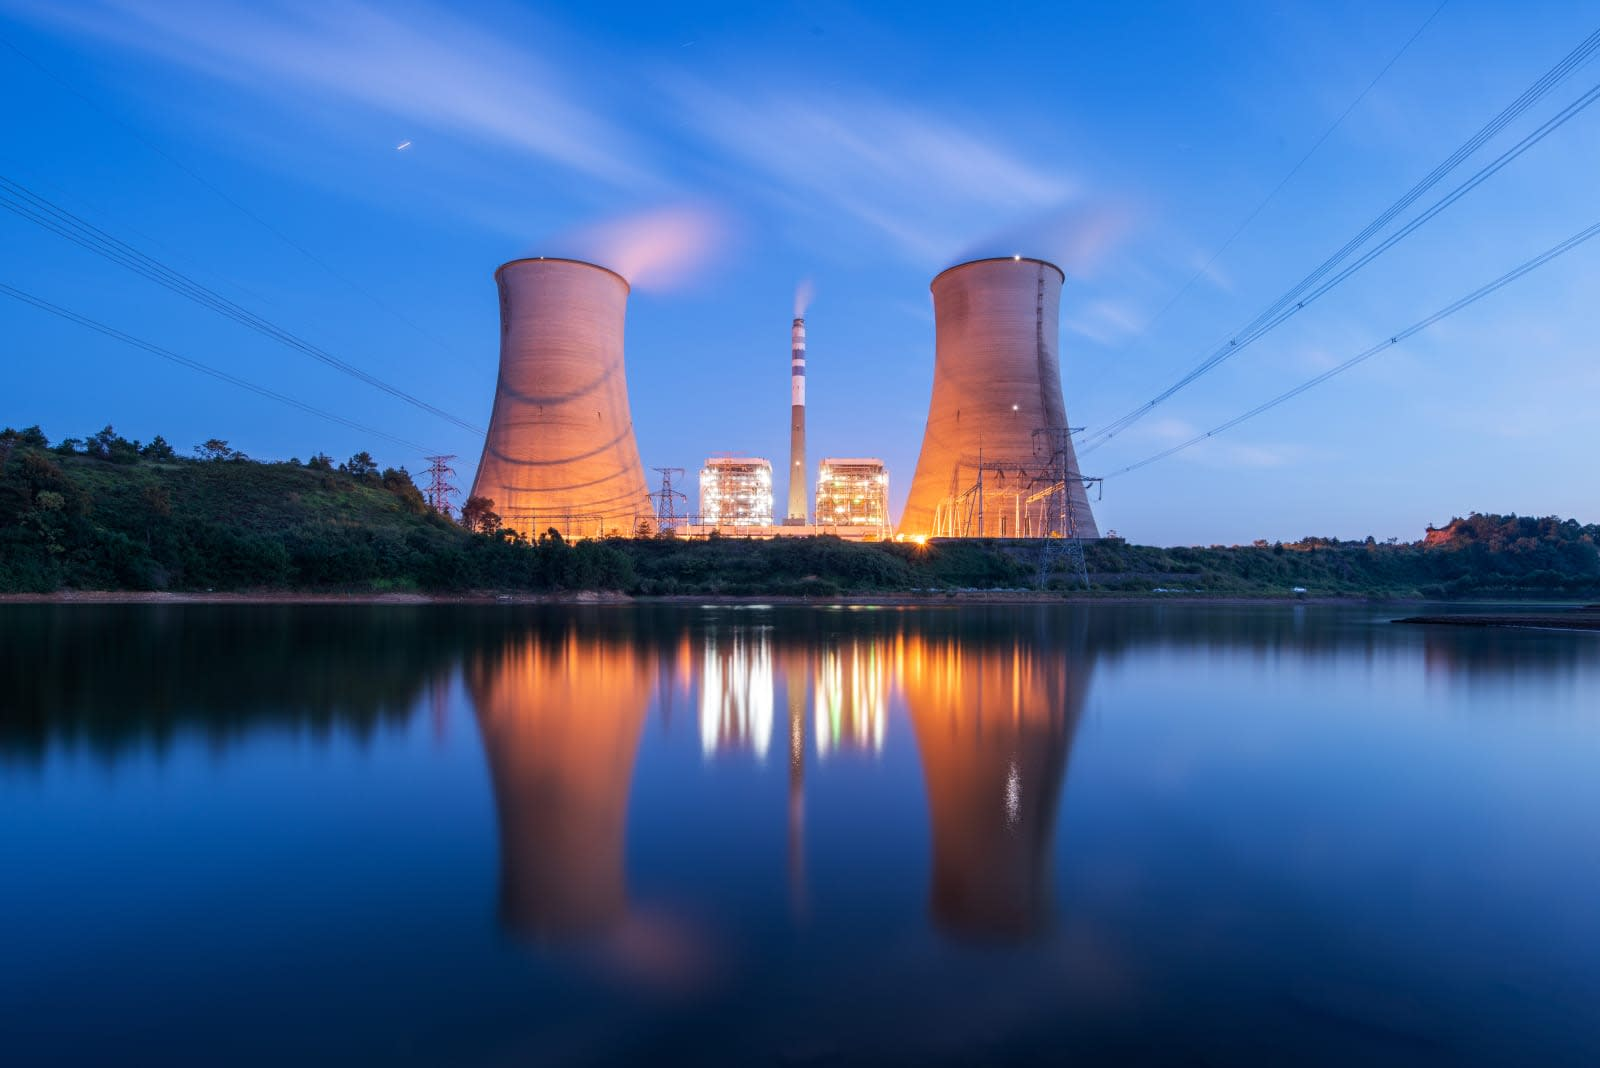 Is it time we gave nuclear power another chance?